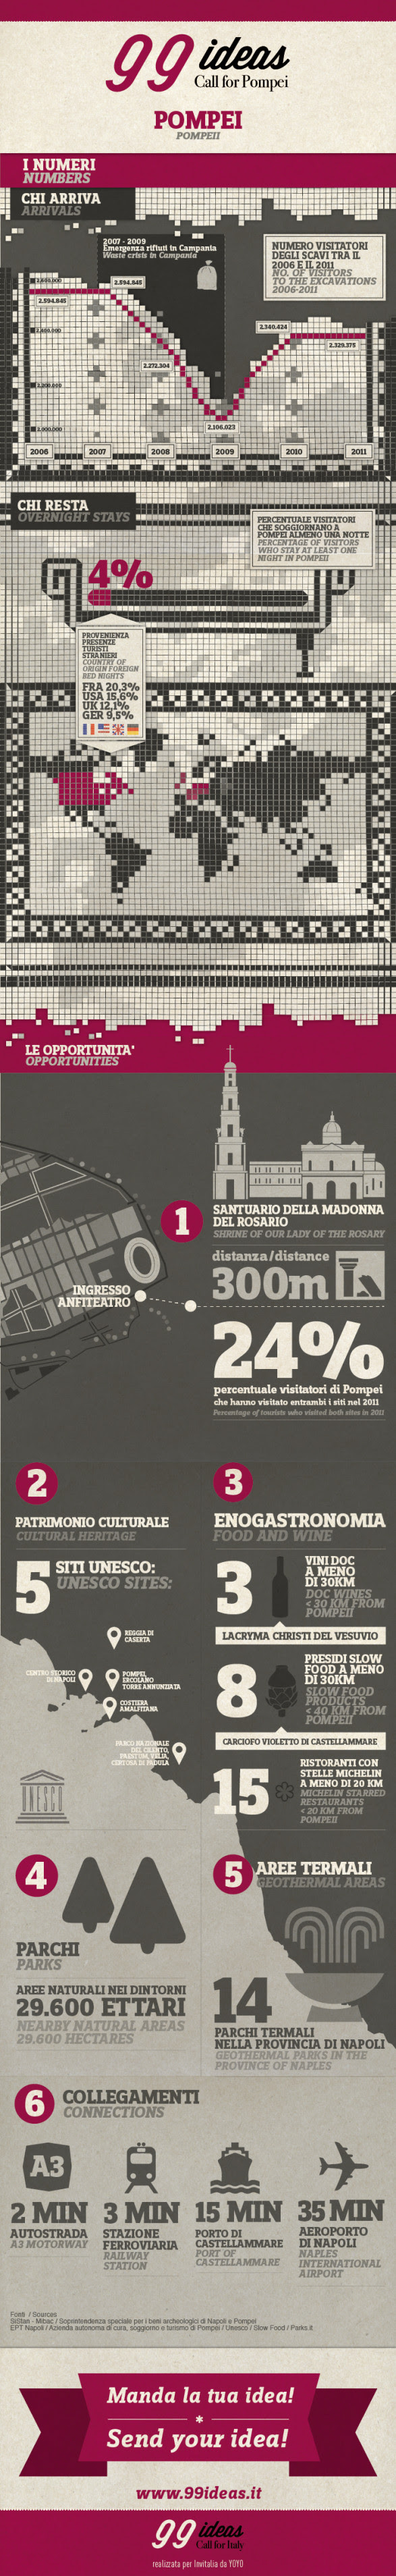 #99ideas infografica #2 Call for #Pompei